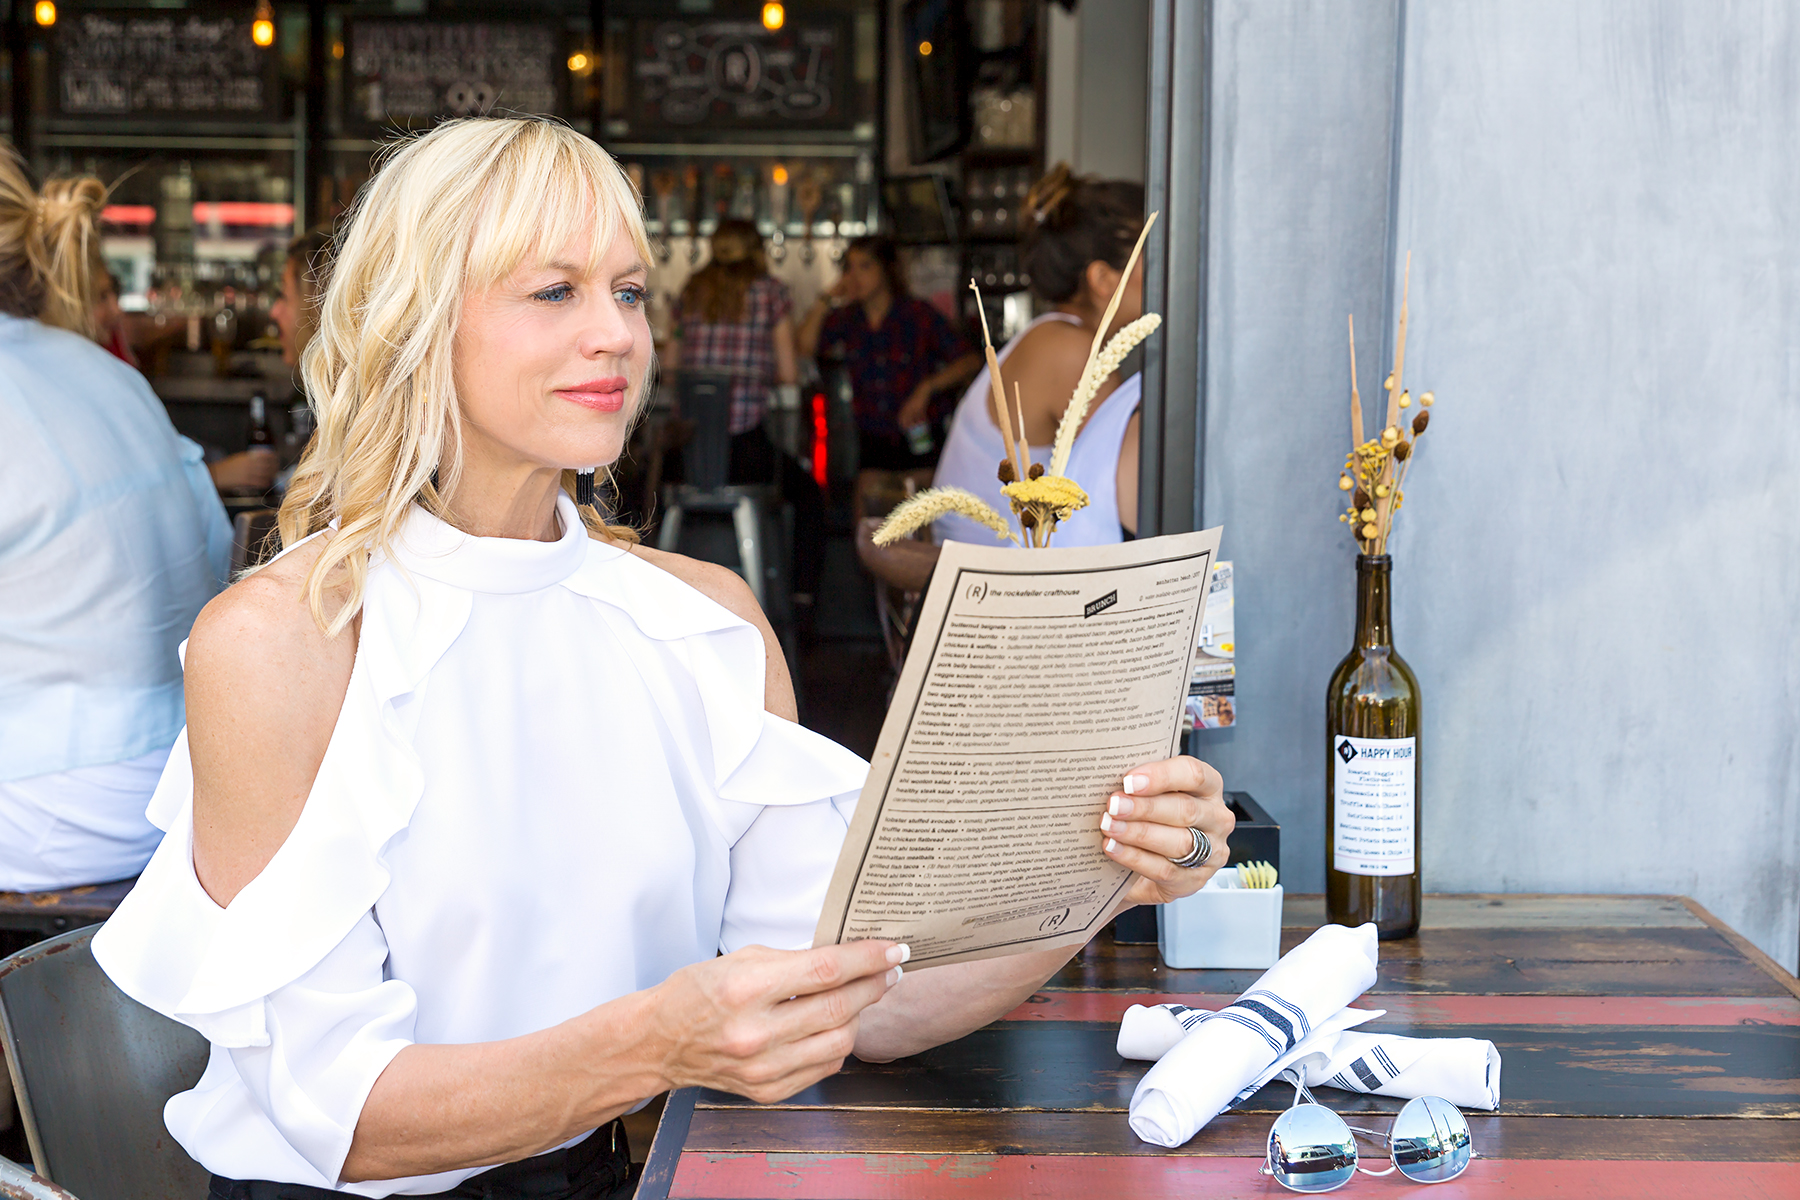 Ordering From the Menu